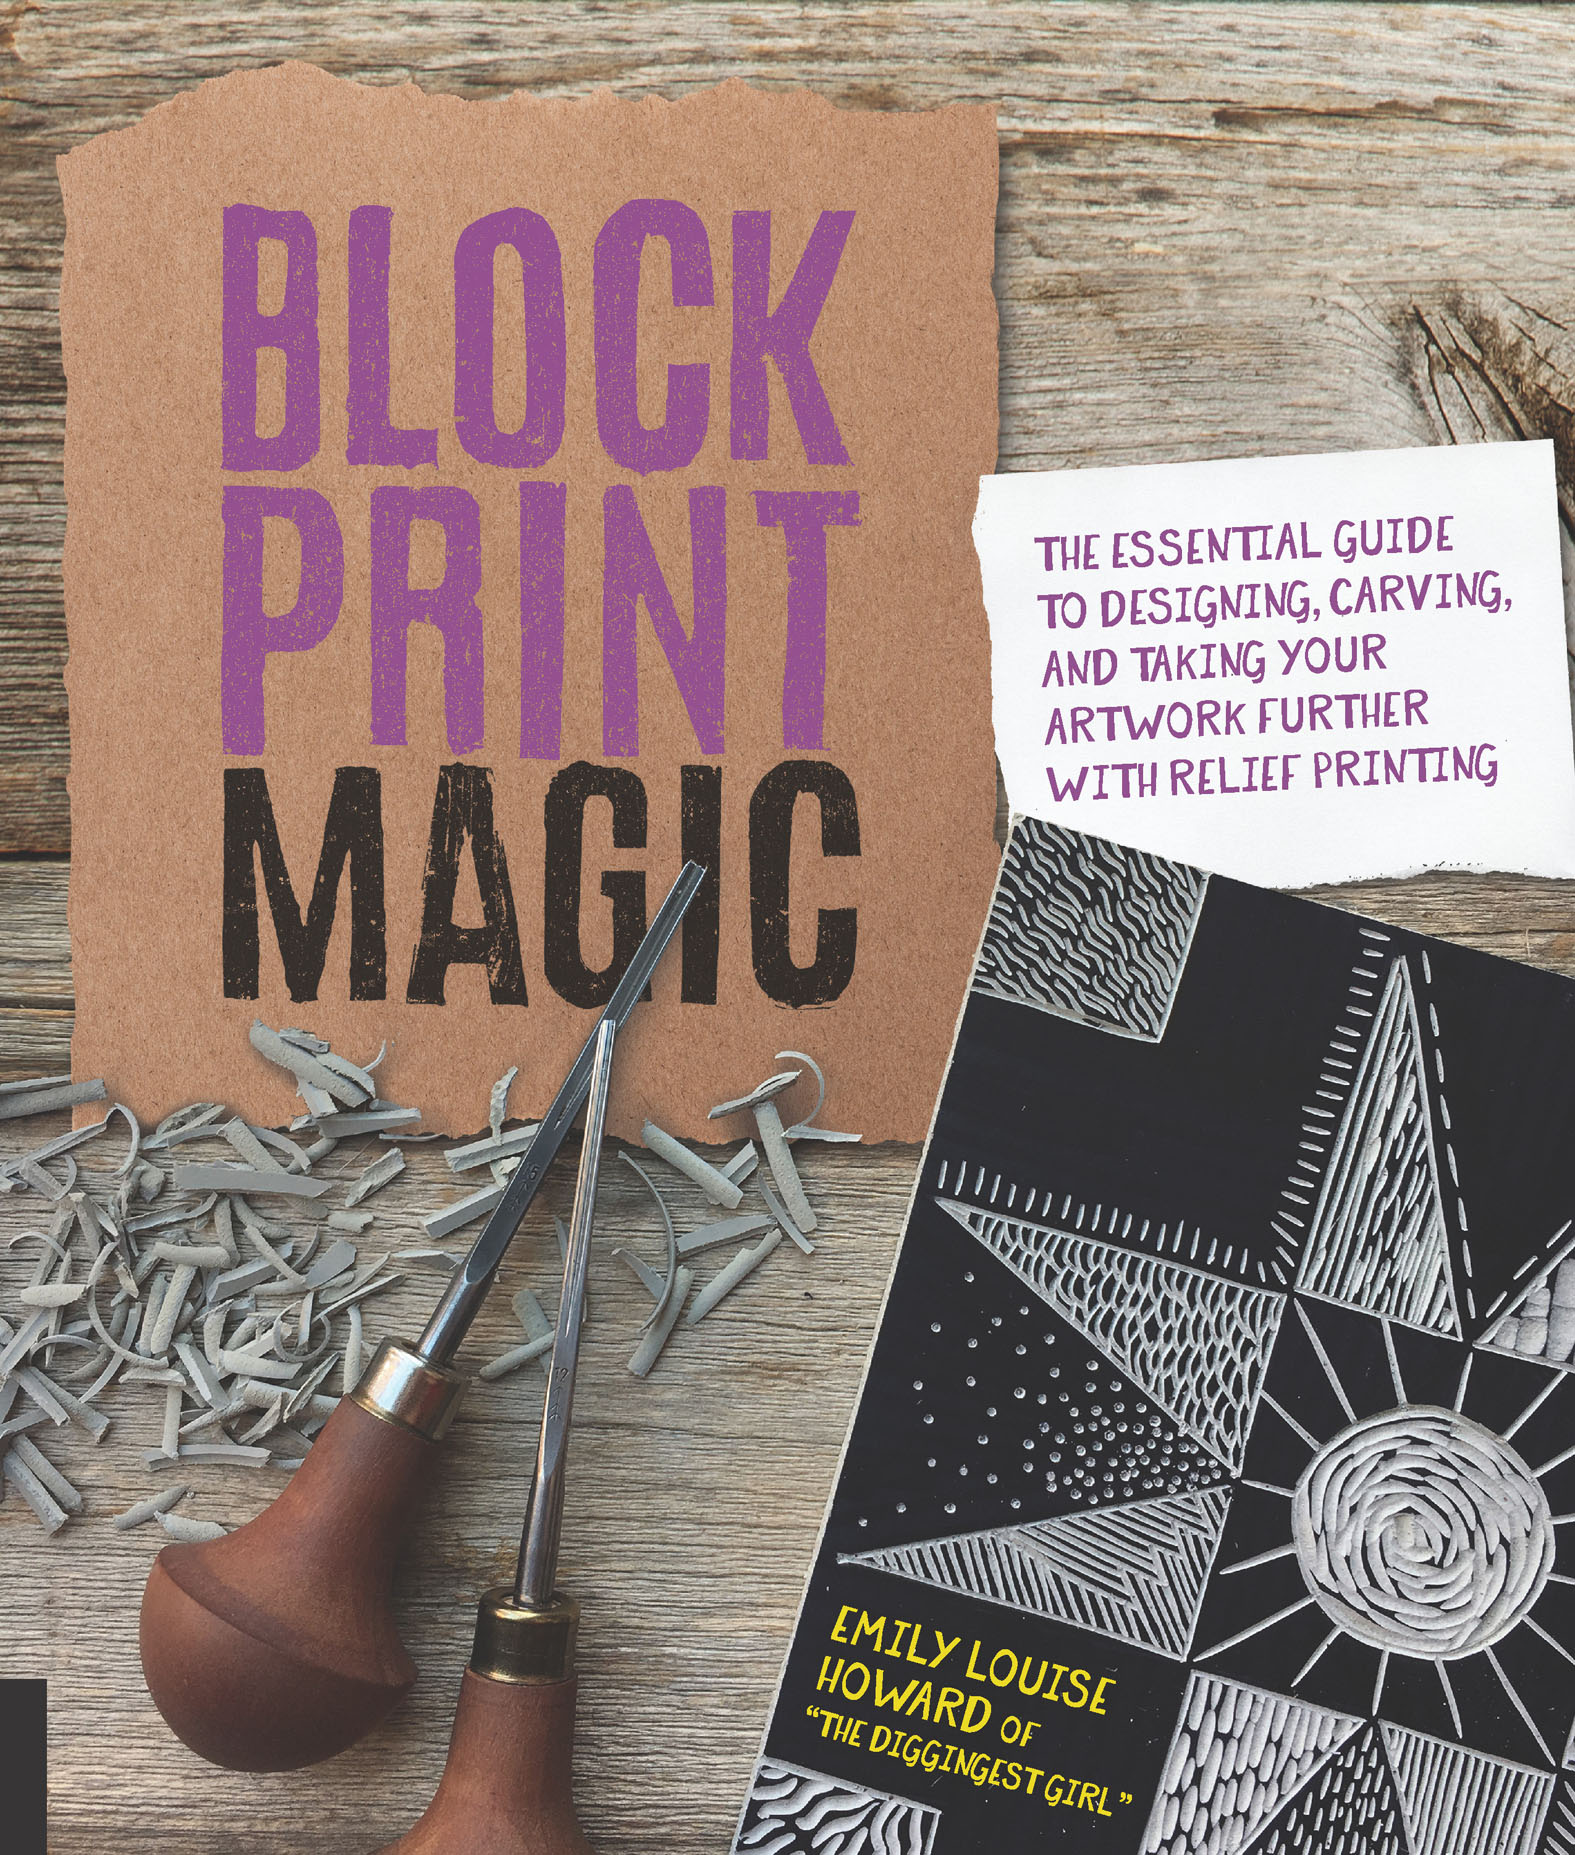 Block Print Magic The Essential Guide to Designing, Carving, and Taking Your Artwork Further with Relief Printing